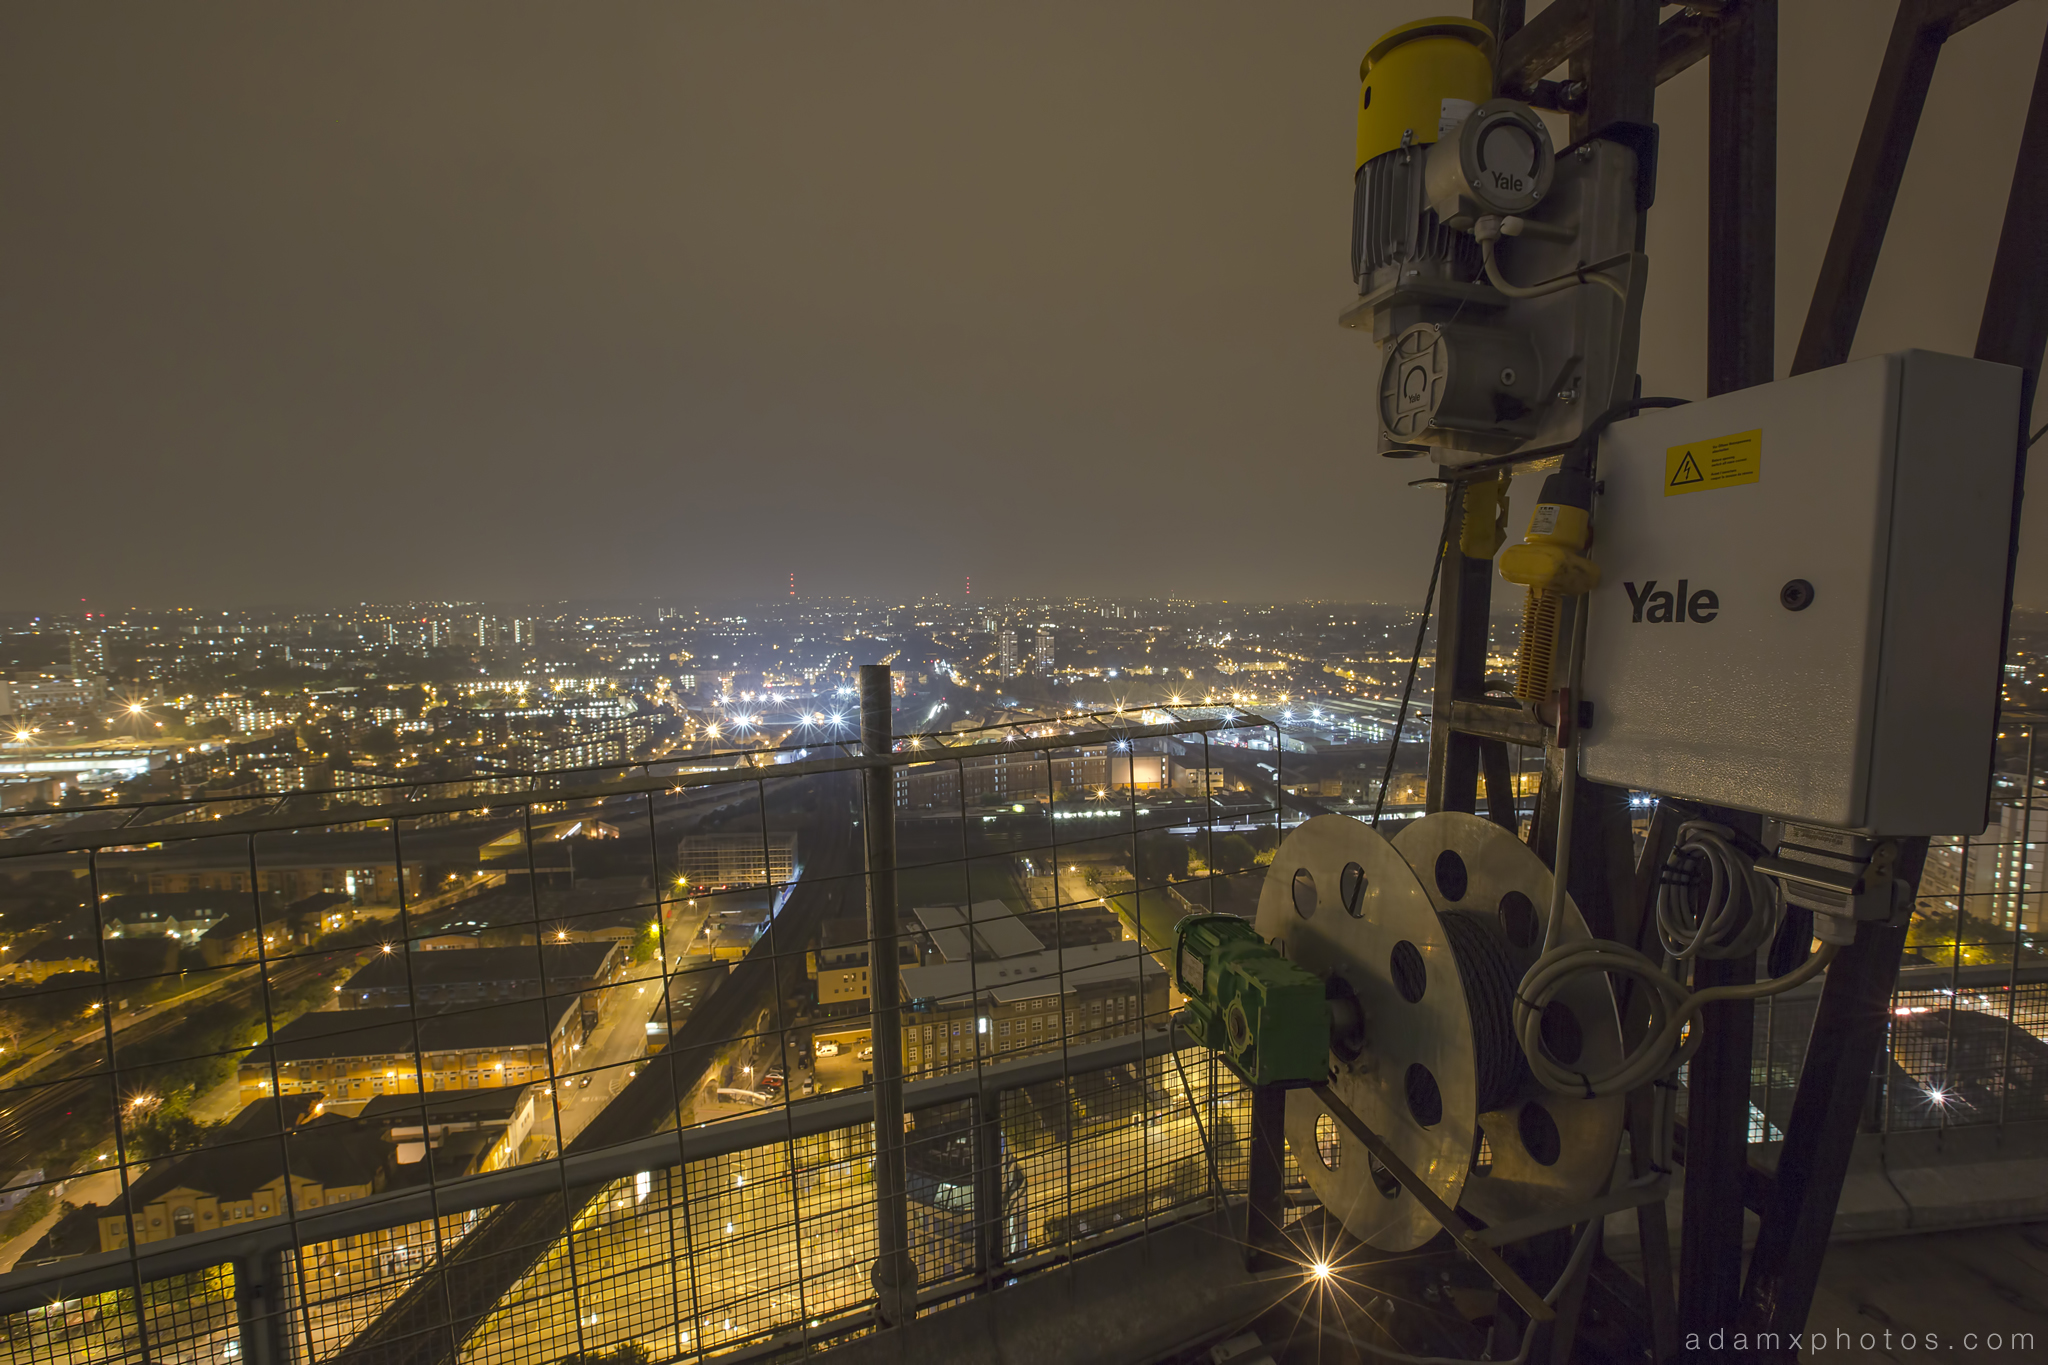 Adam X Urbex UE Urban Exploration London Rooftops High Night Photo Photography Skyline Battersea Gas Holders Gasometer roof explorers battersea power station BPS lift